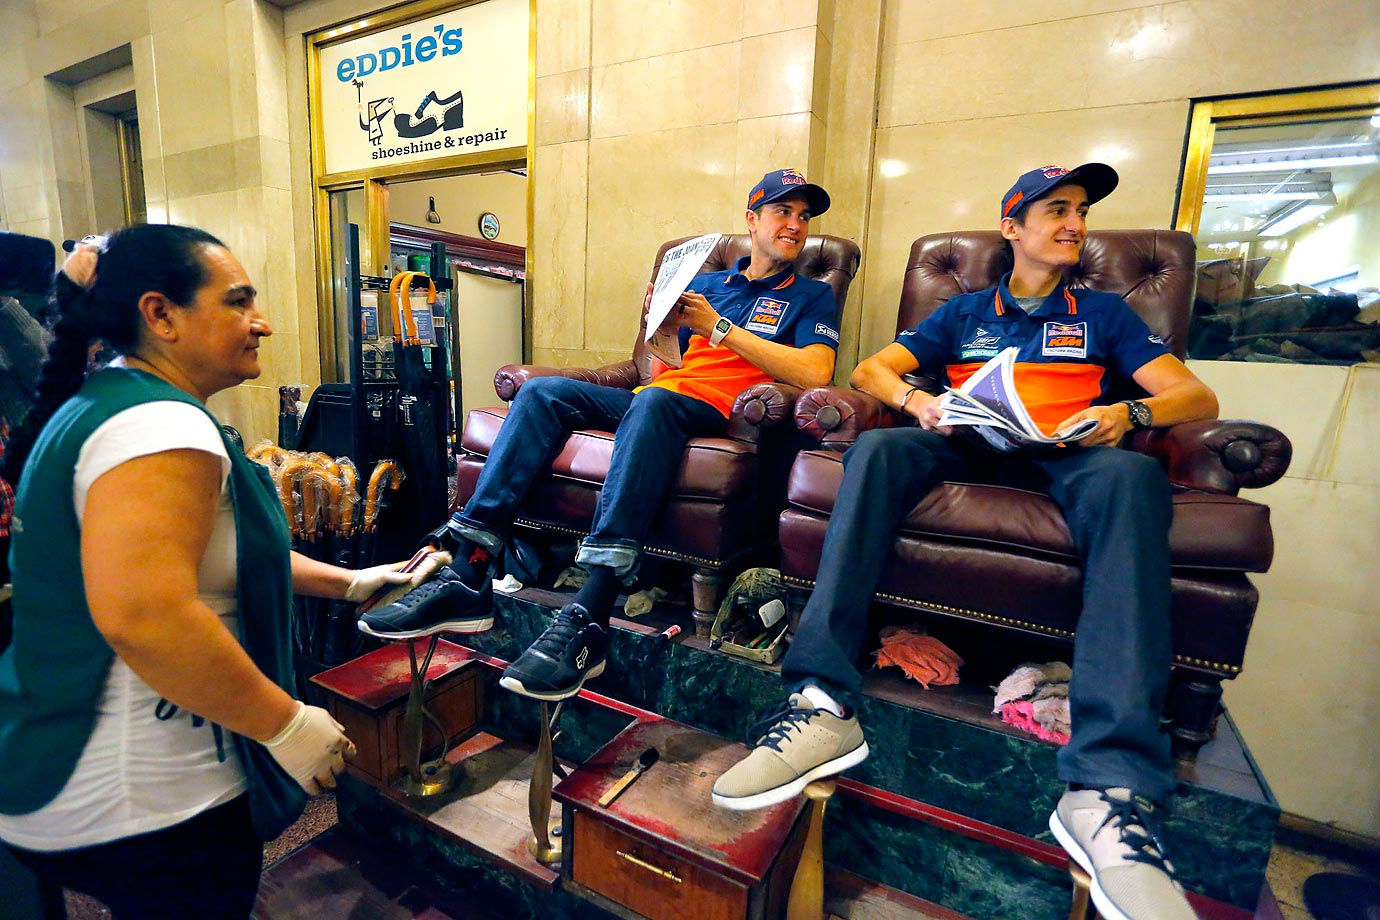 Dungey and racing team member Marvin Musquin having fun with a shoe shine at Grand Central Station.